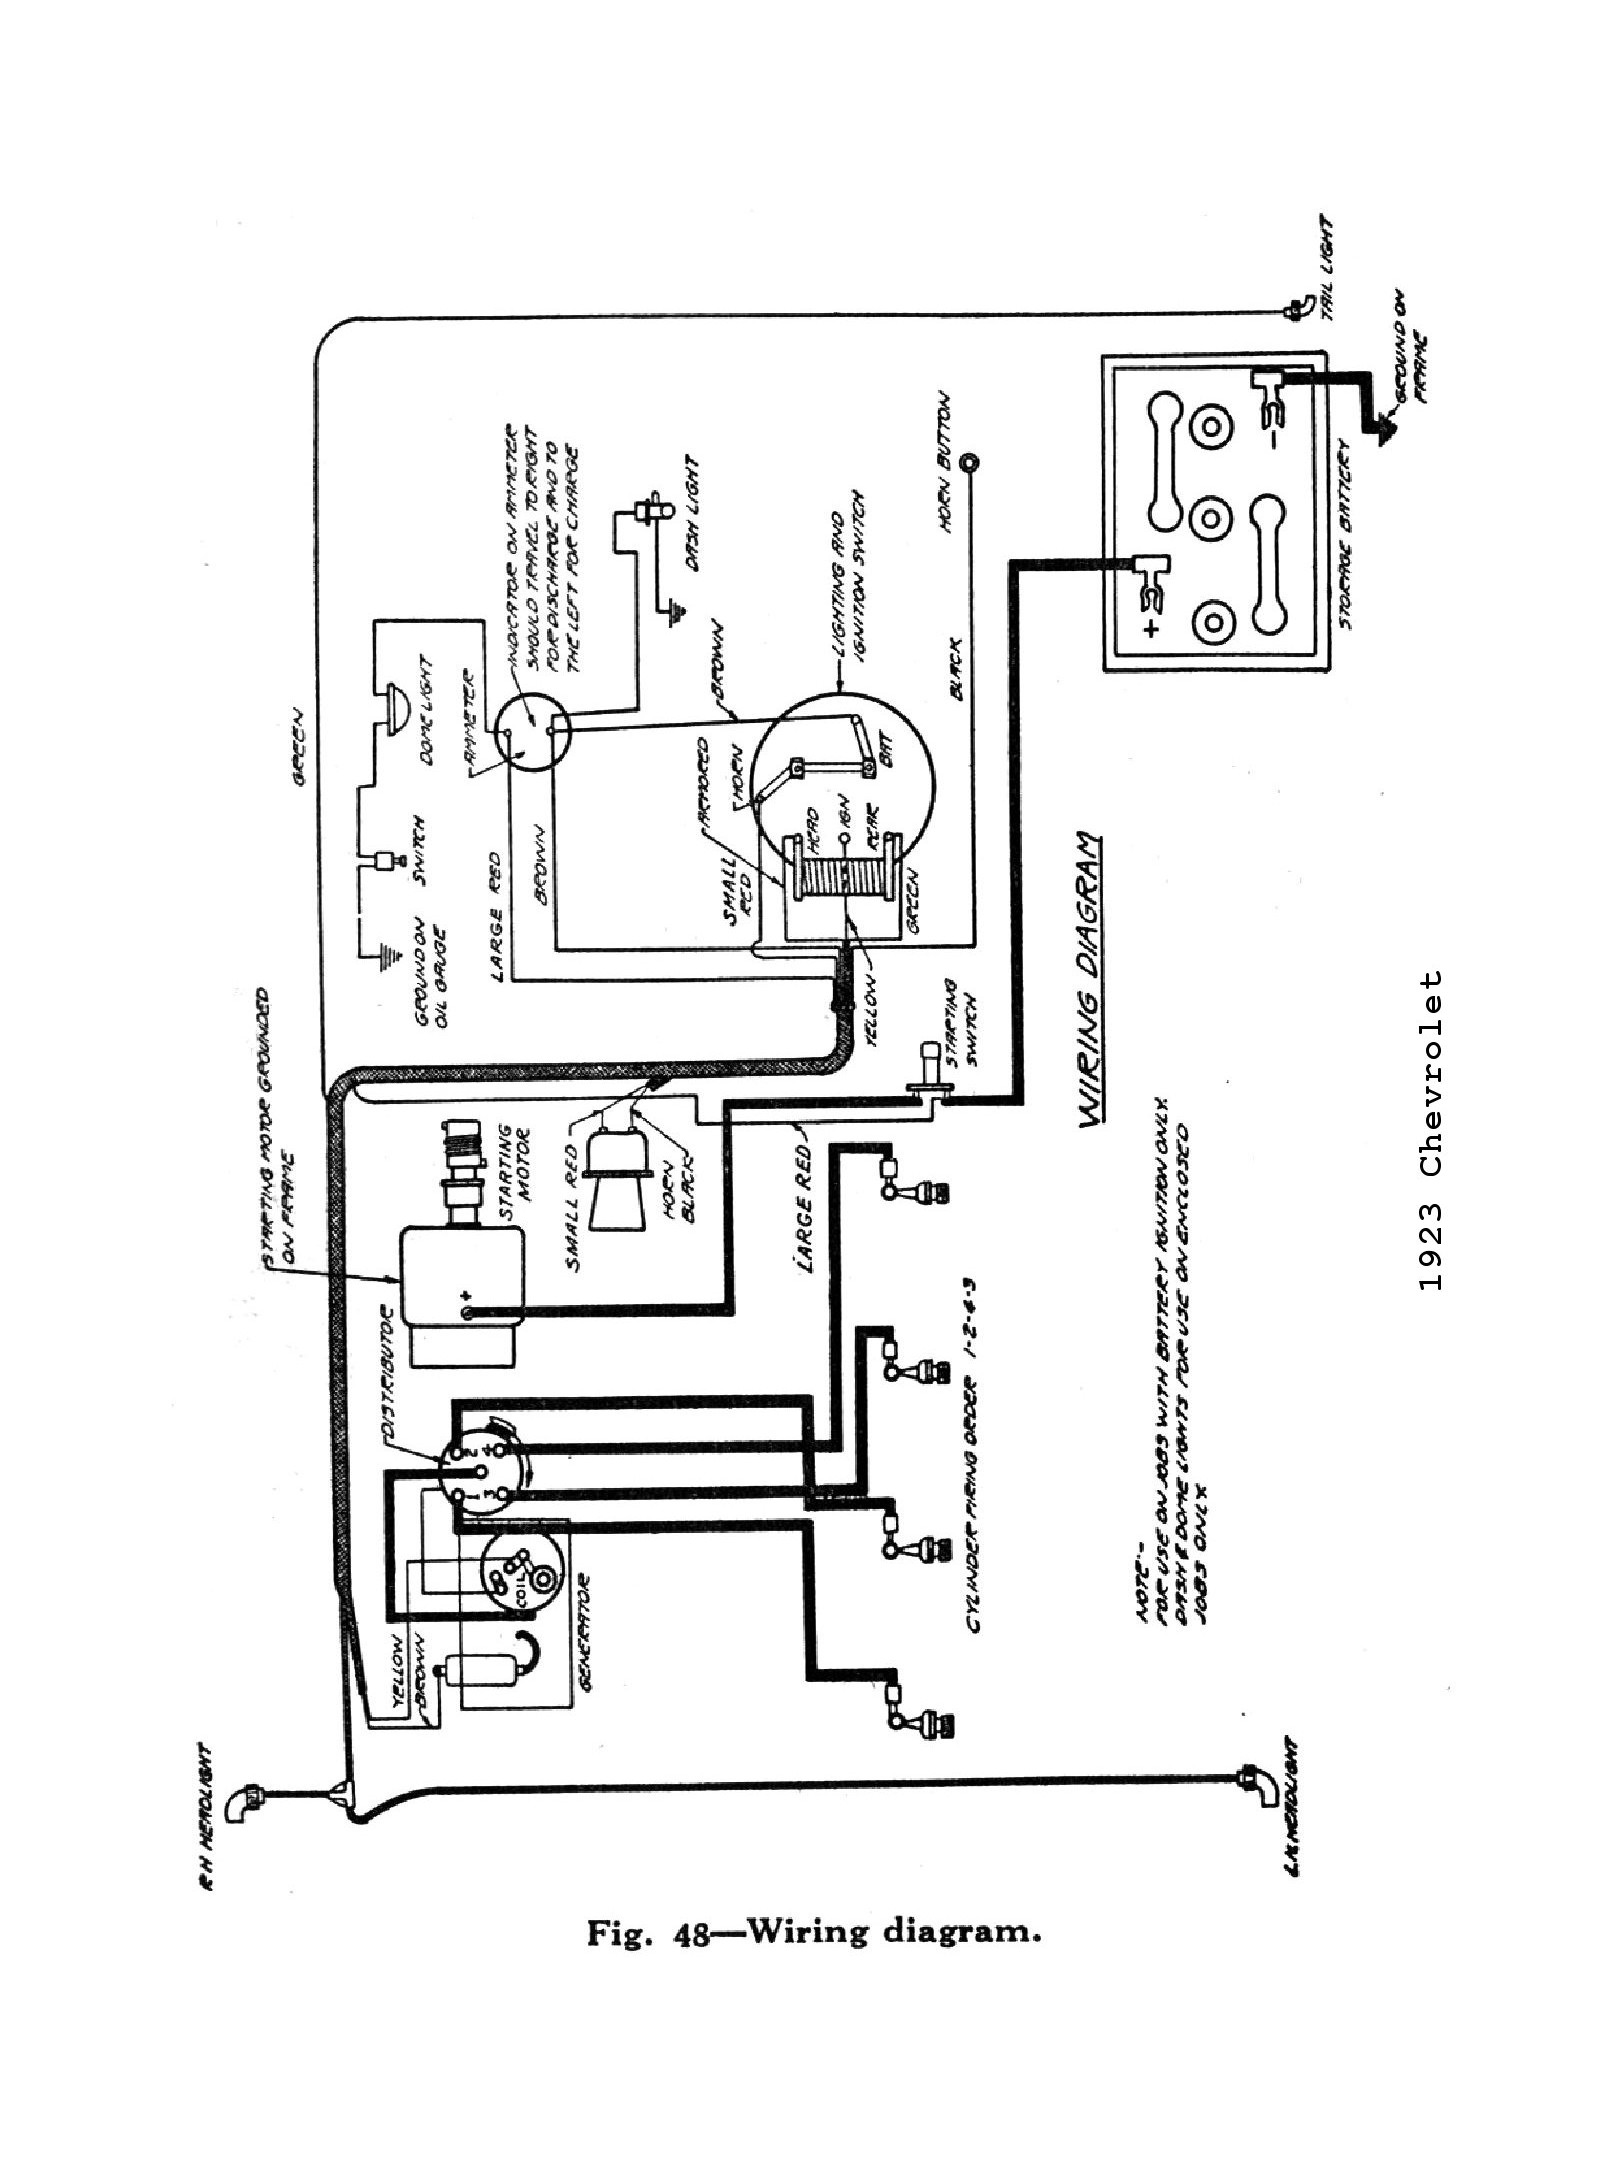 hight resolution of power king wiring schematic simple wiring diagram rh 15 mara cujas de basic house wiring schematics